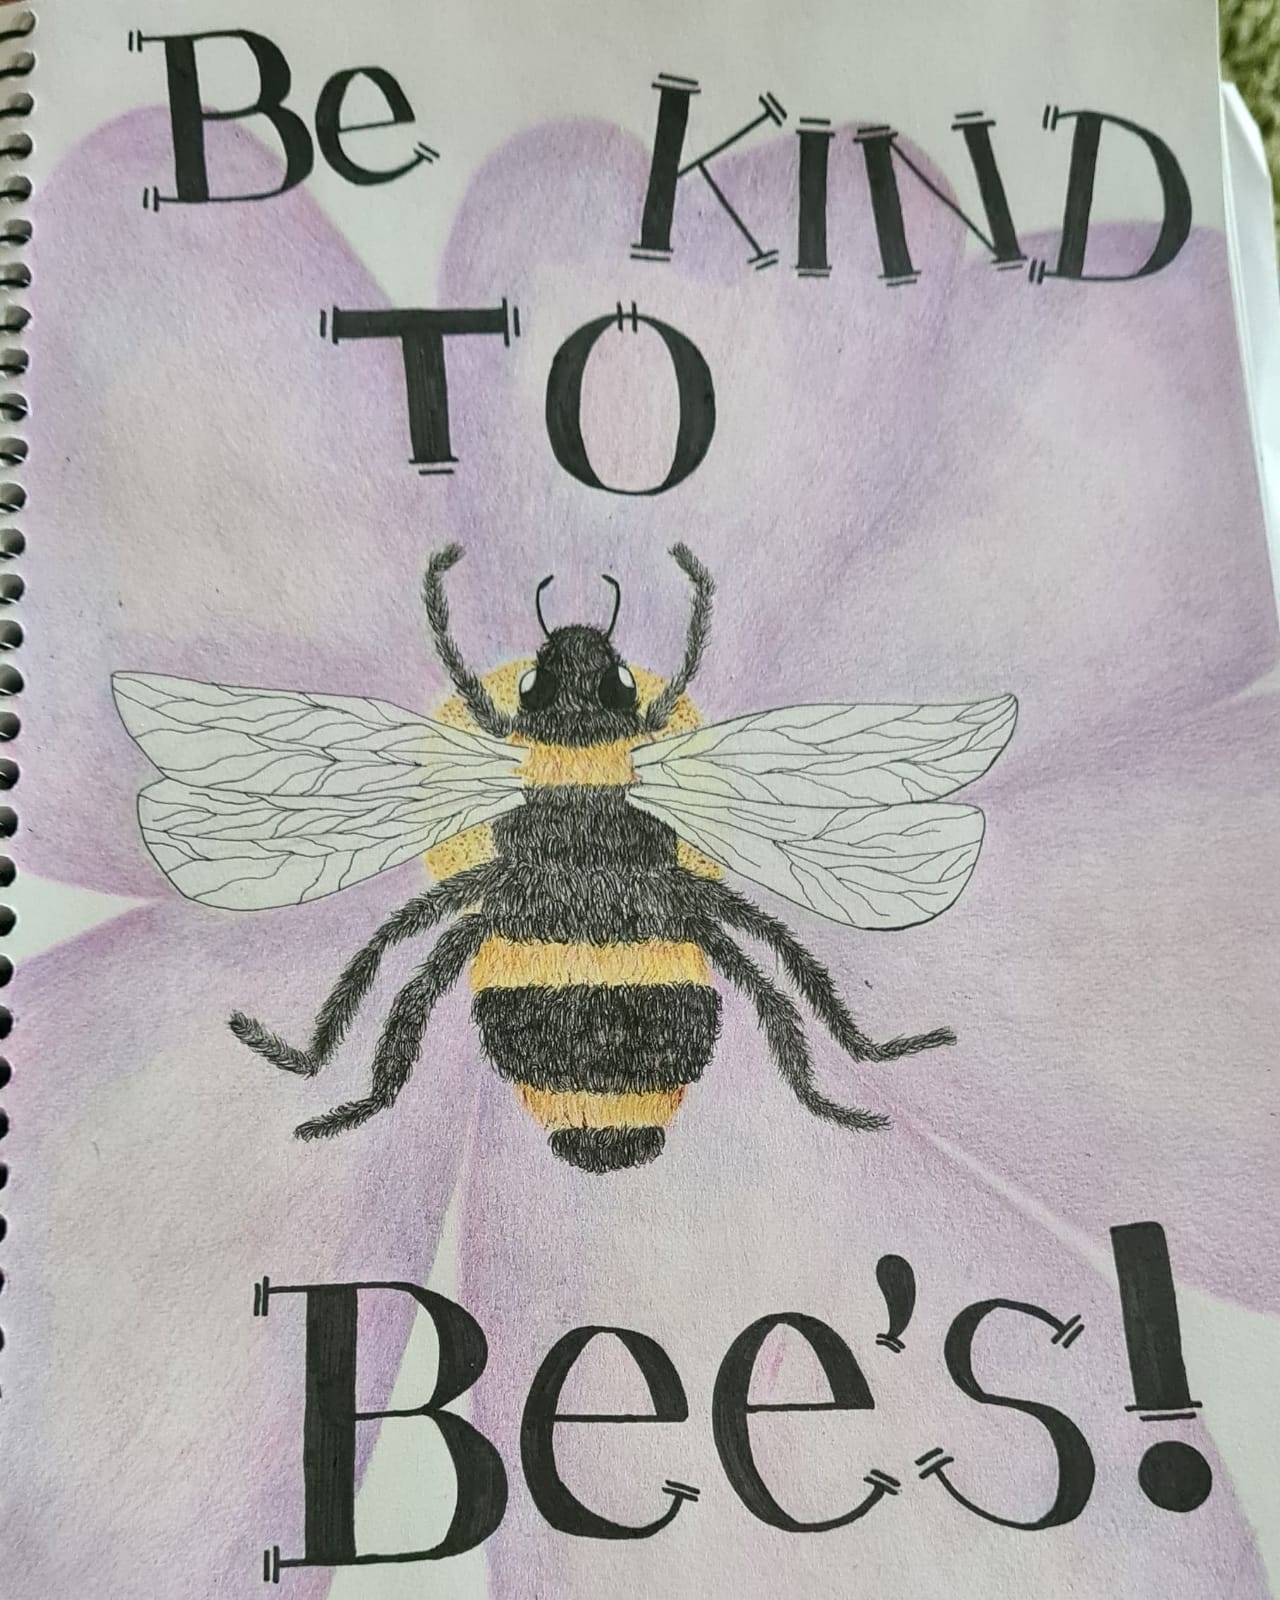 """This is a picture of a light purple flower that takes up the whole page with a bumble bee on top of it. On top of the flower there are the words """" be kind to bees"""" in black lettering."""